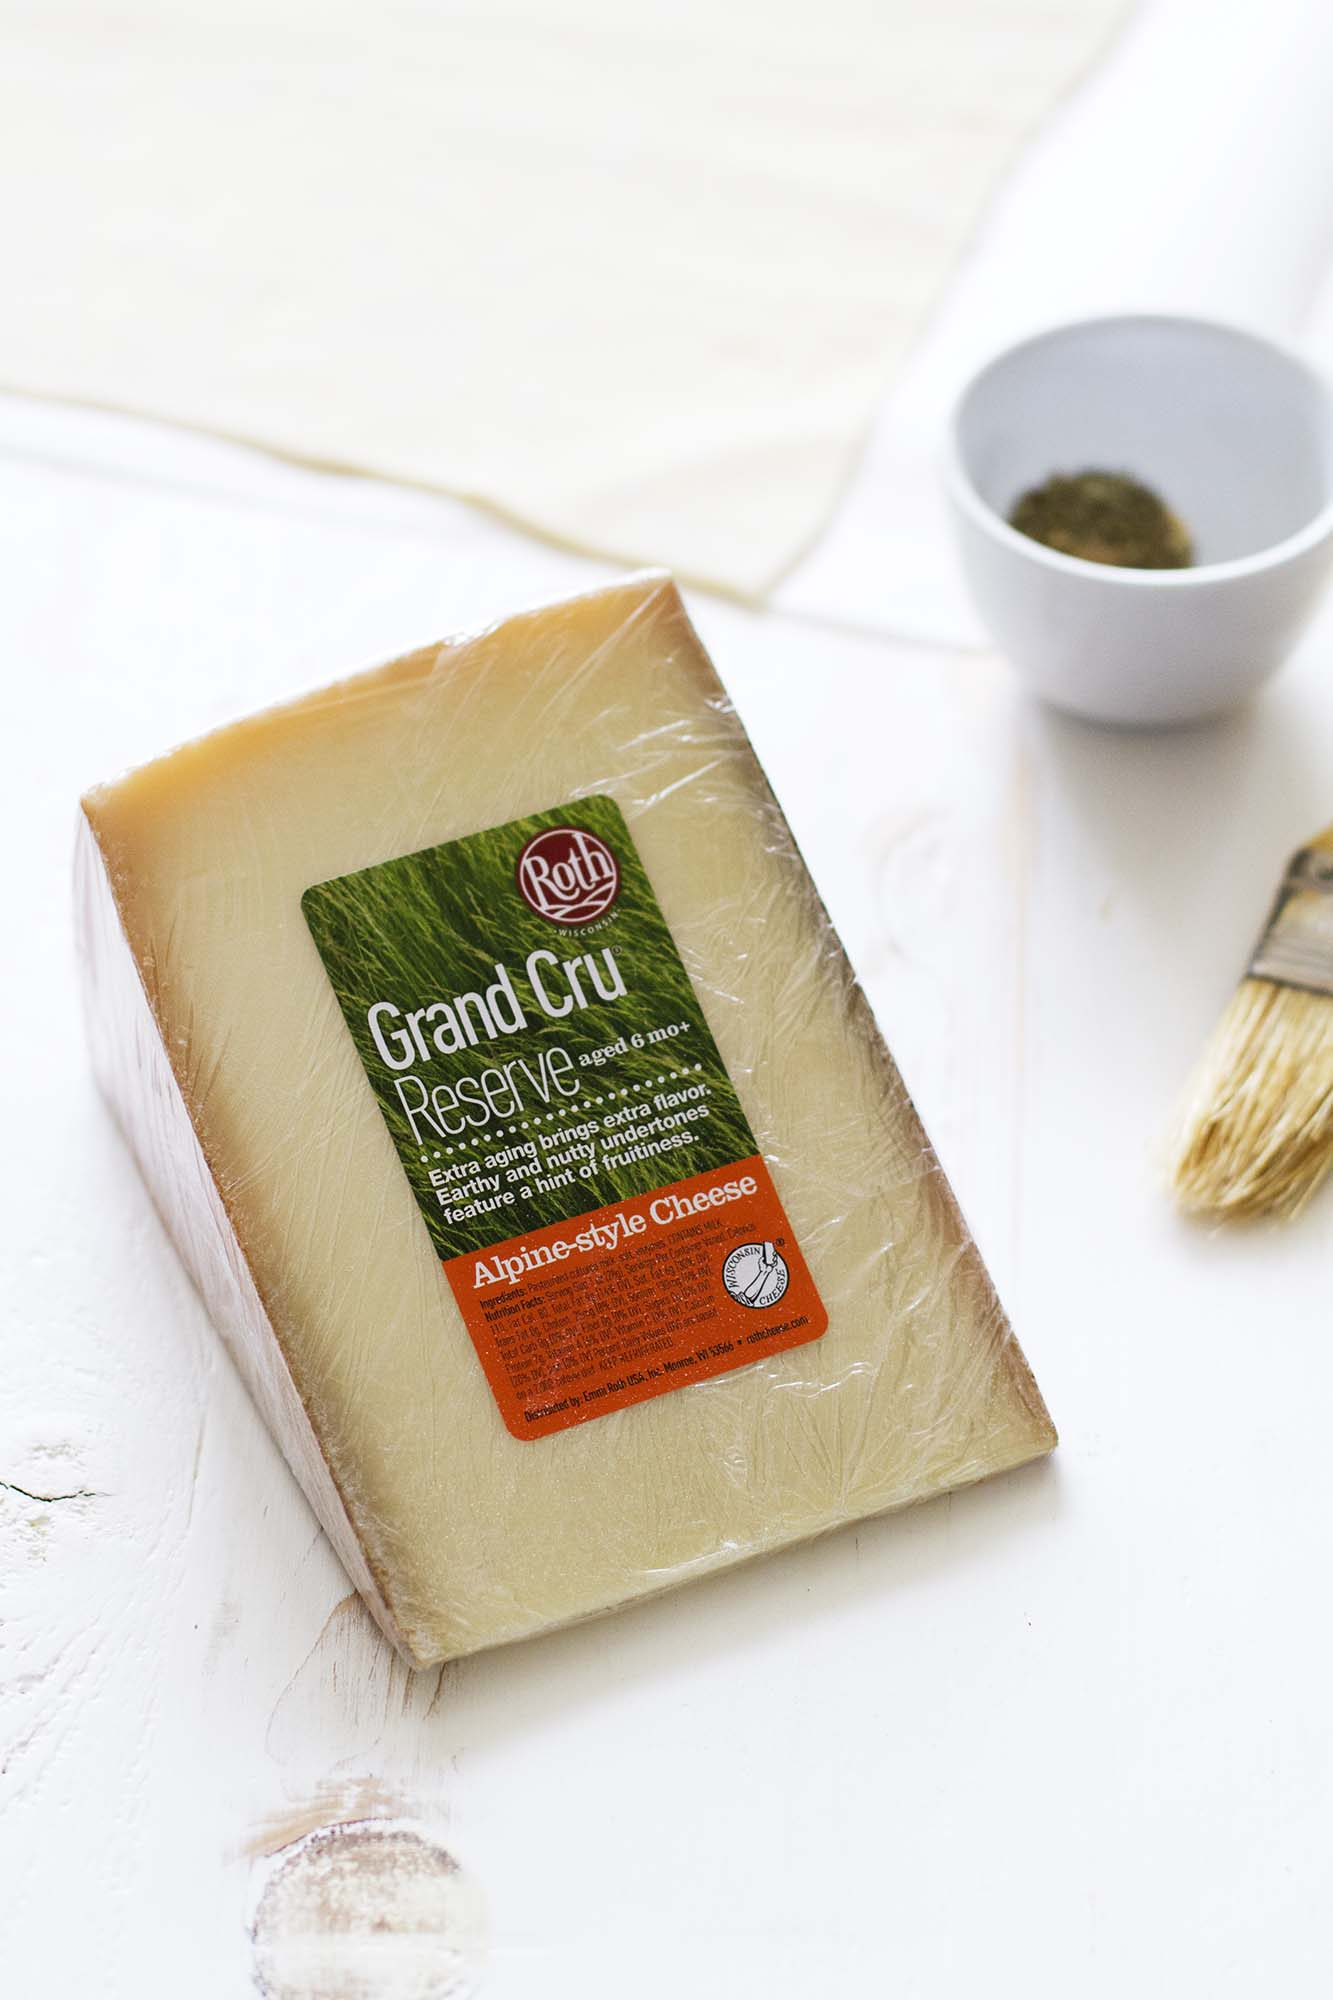 Roth grand cru cheese block